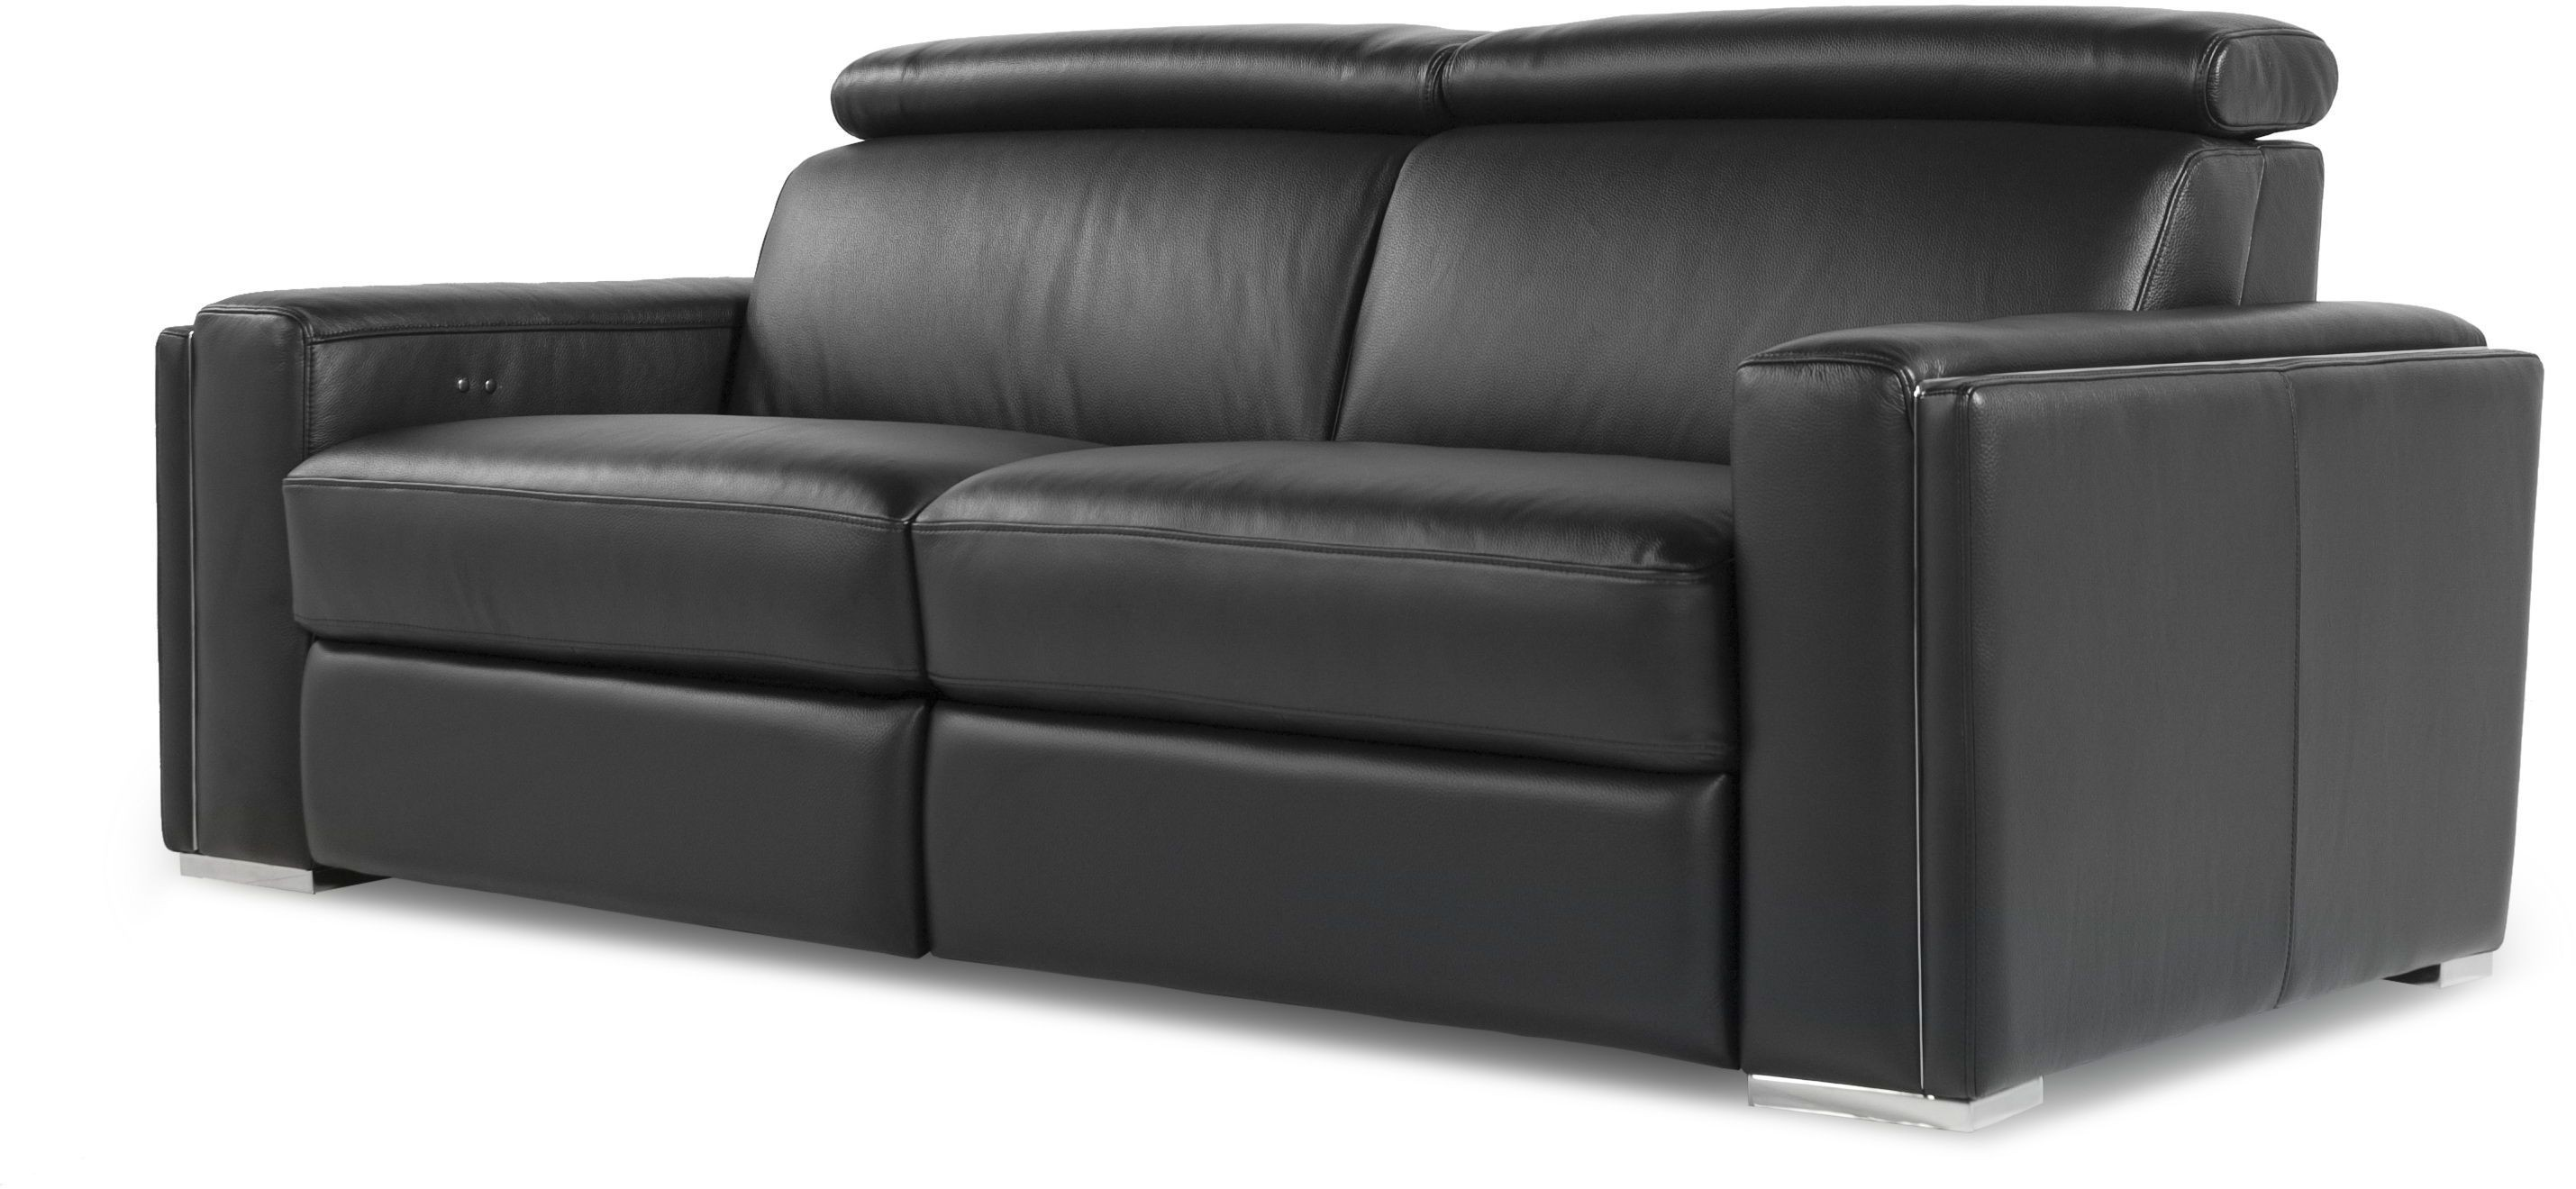 Ellie Black Top Grain Leather Reclining Sofa From Moroni